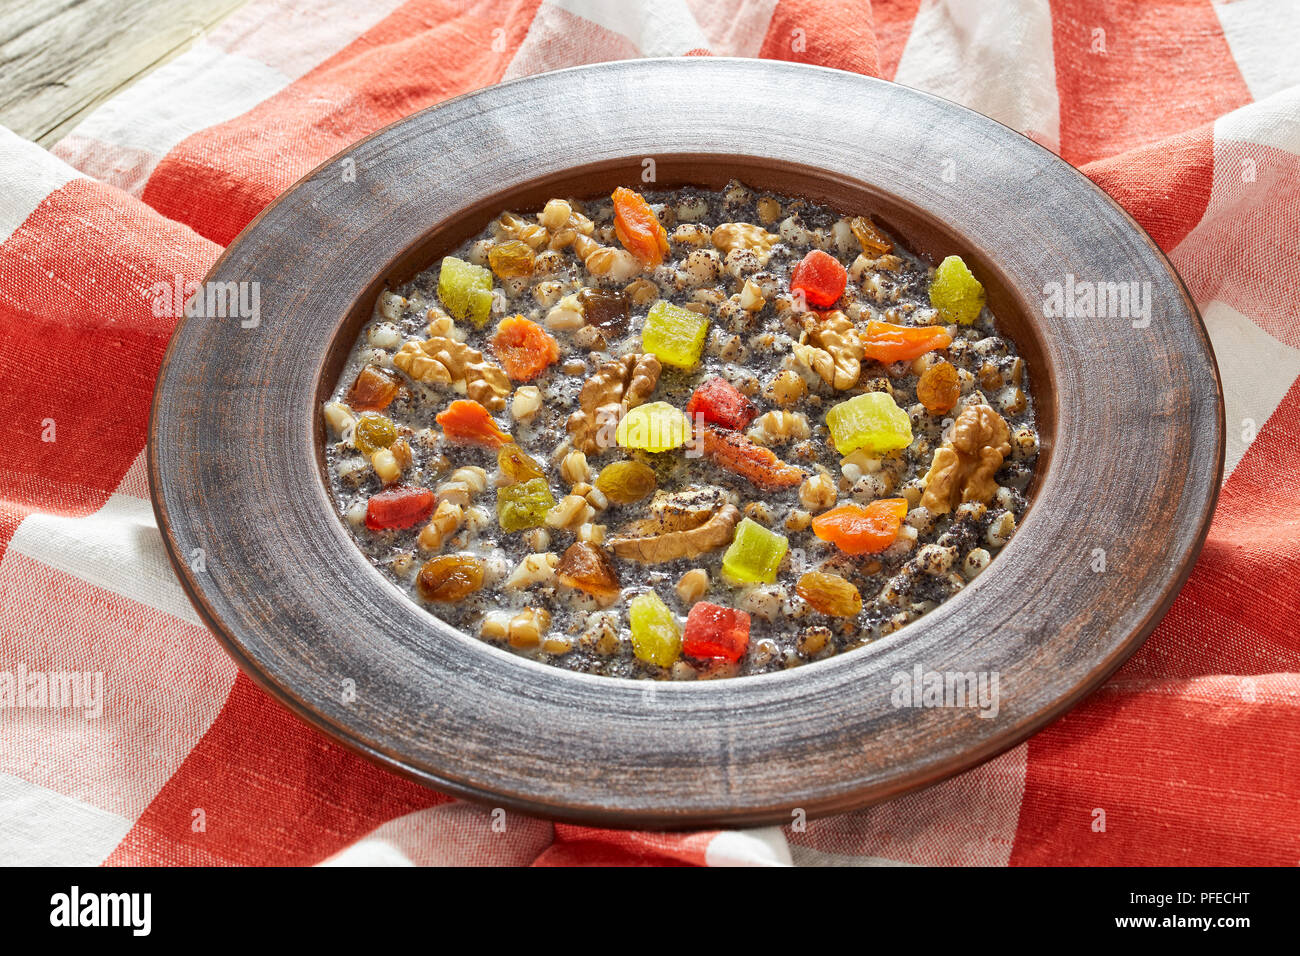 sweet winter Poppy Seed and wheat soup Kutya, traditional Ukrainian Christmas food with walnuts, raisins, dried apricot and honey, authentic recipe, c - Stock Image